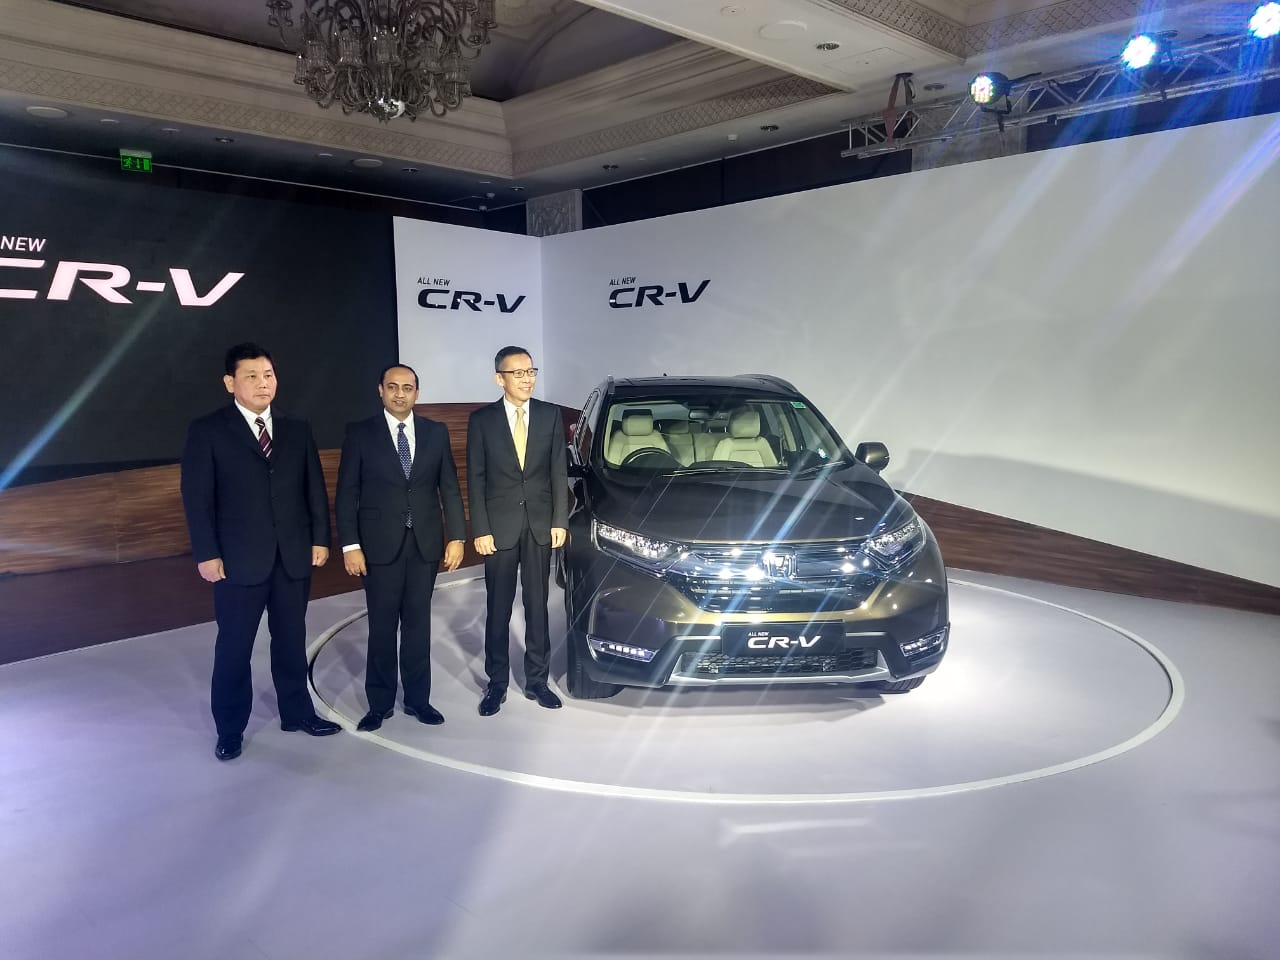 2018 honda cr-v india launch live updates: images, specifications